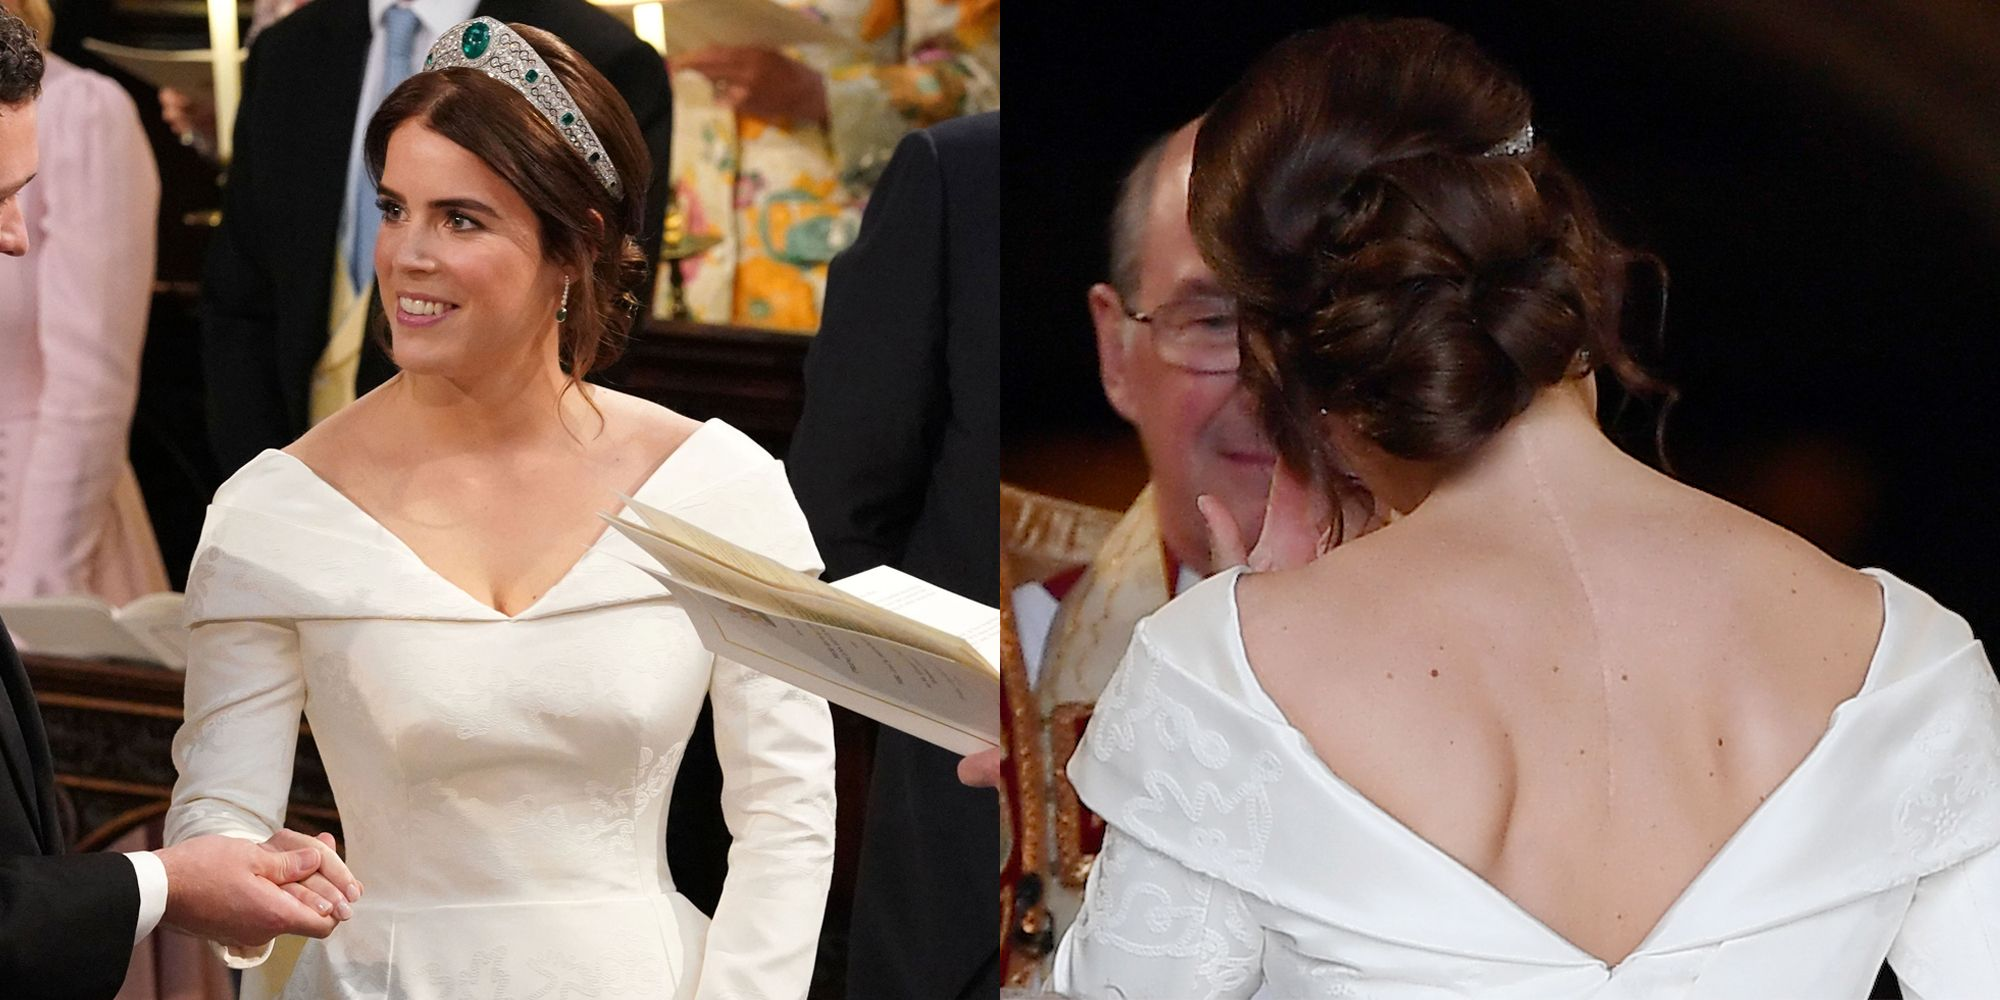 Princess Eugenie S Wedding Dress Shows Her Scars From Scoliosis